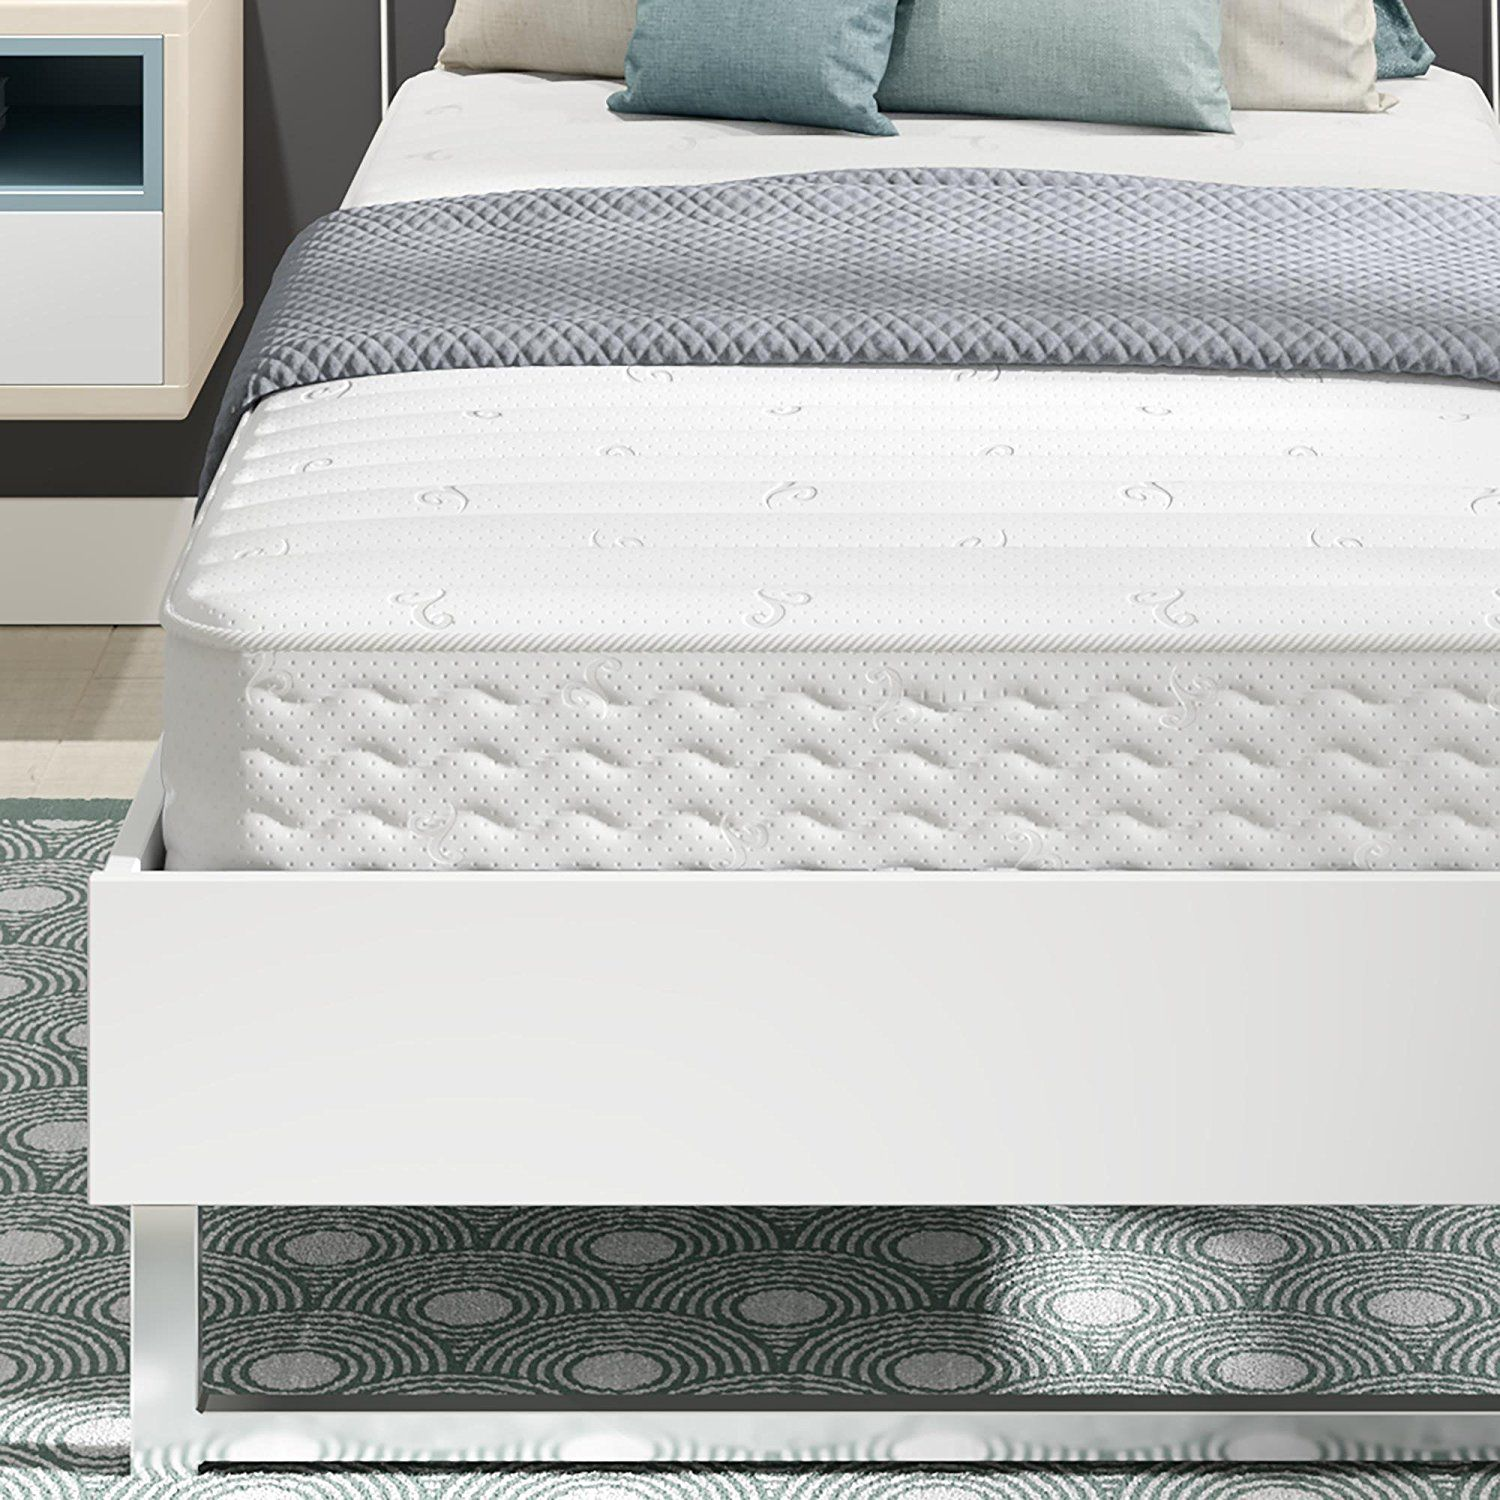 The 8 Best Twin Mattresses For Toddlers